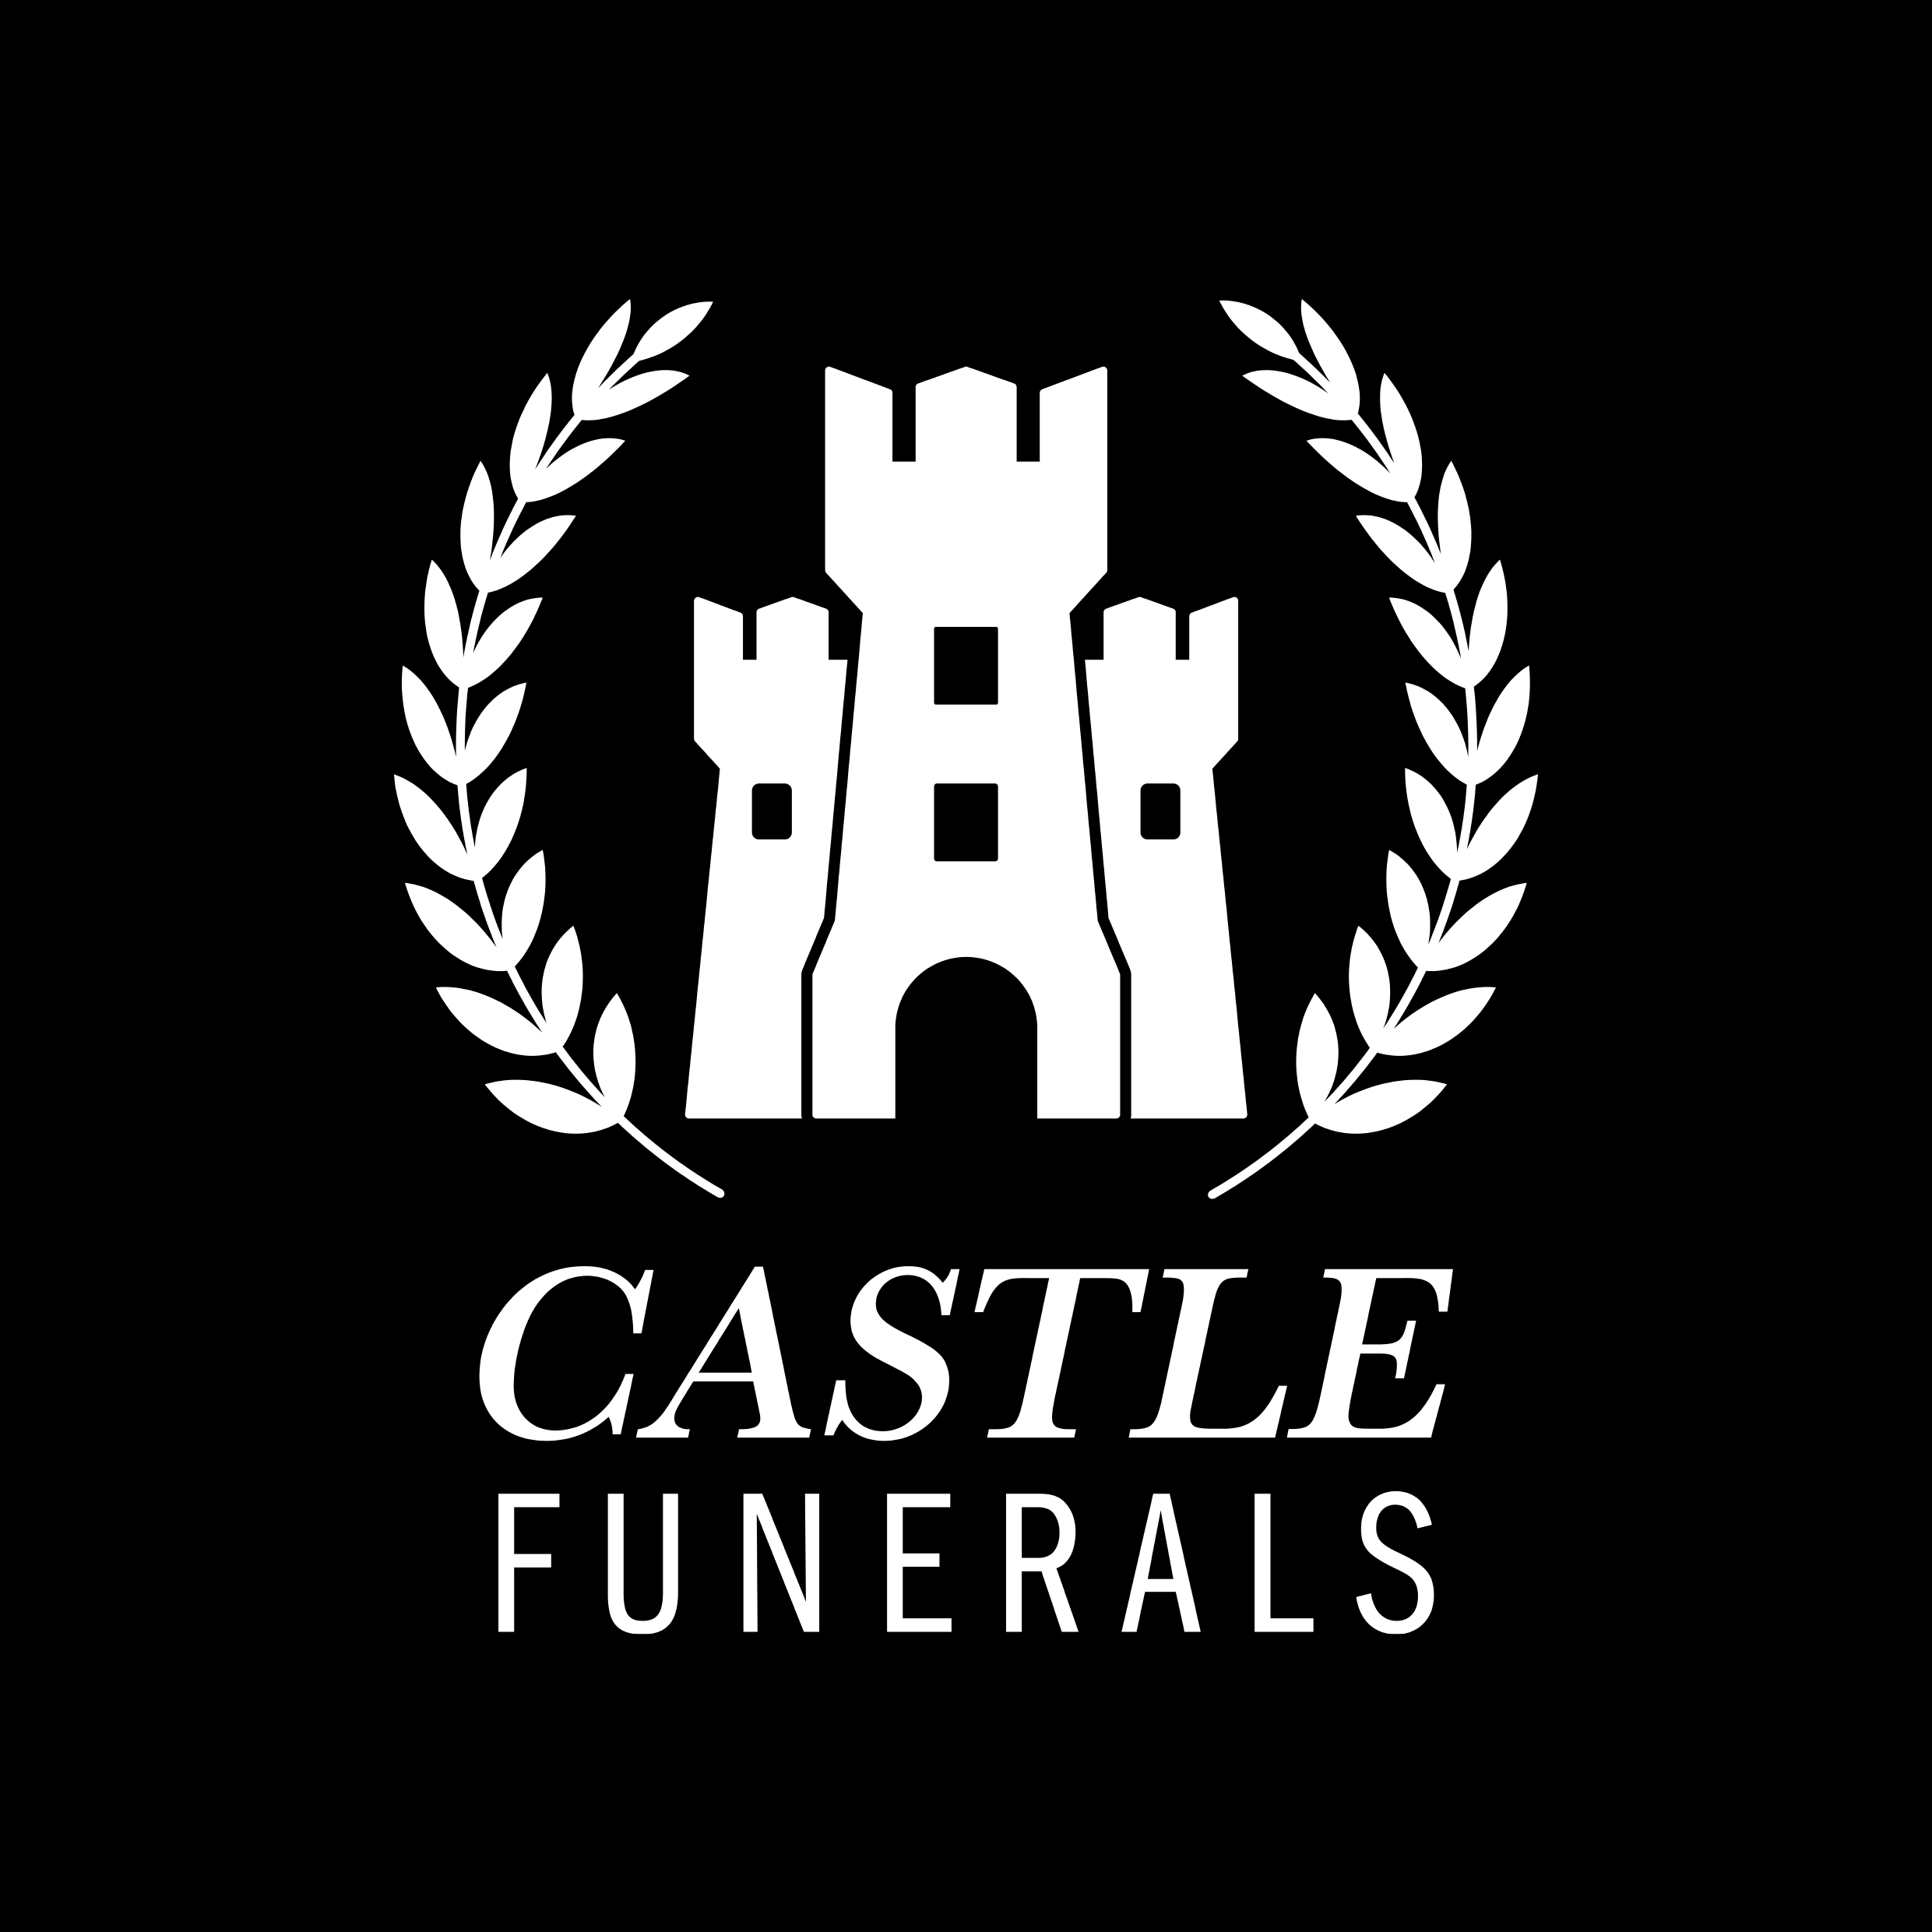 Logo Design castle funerals white